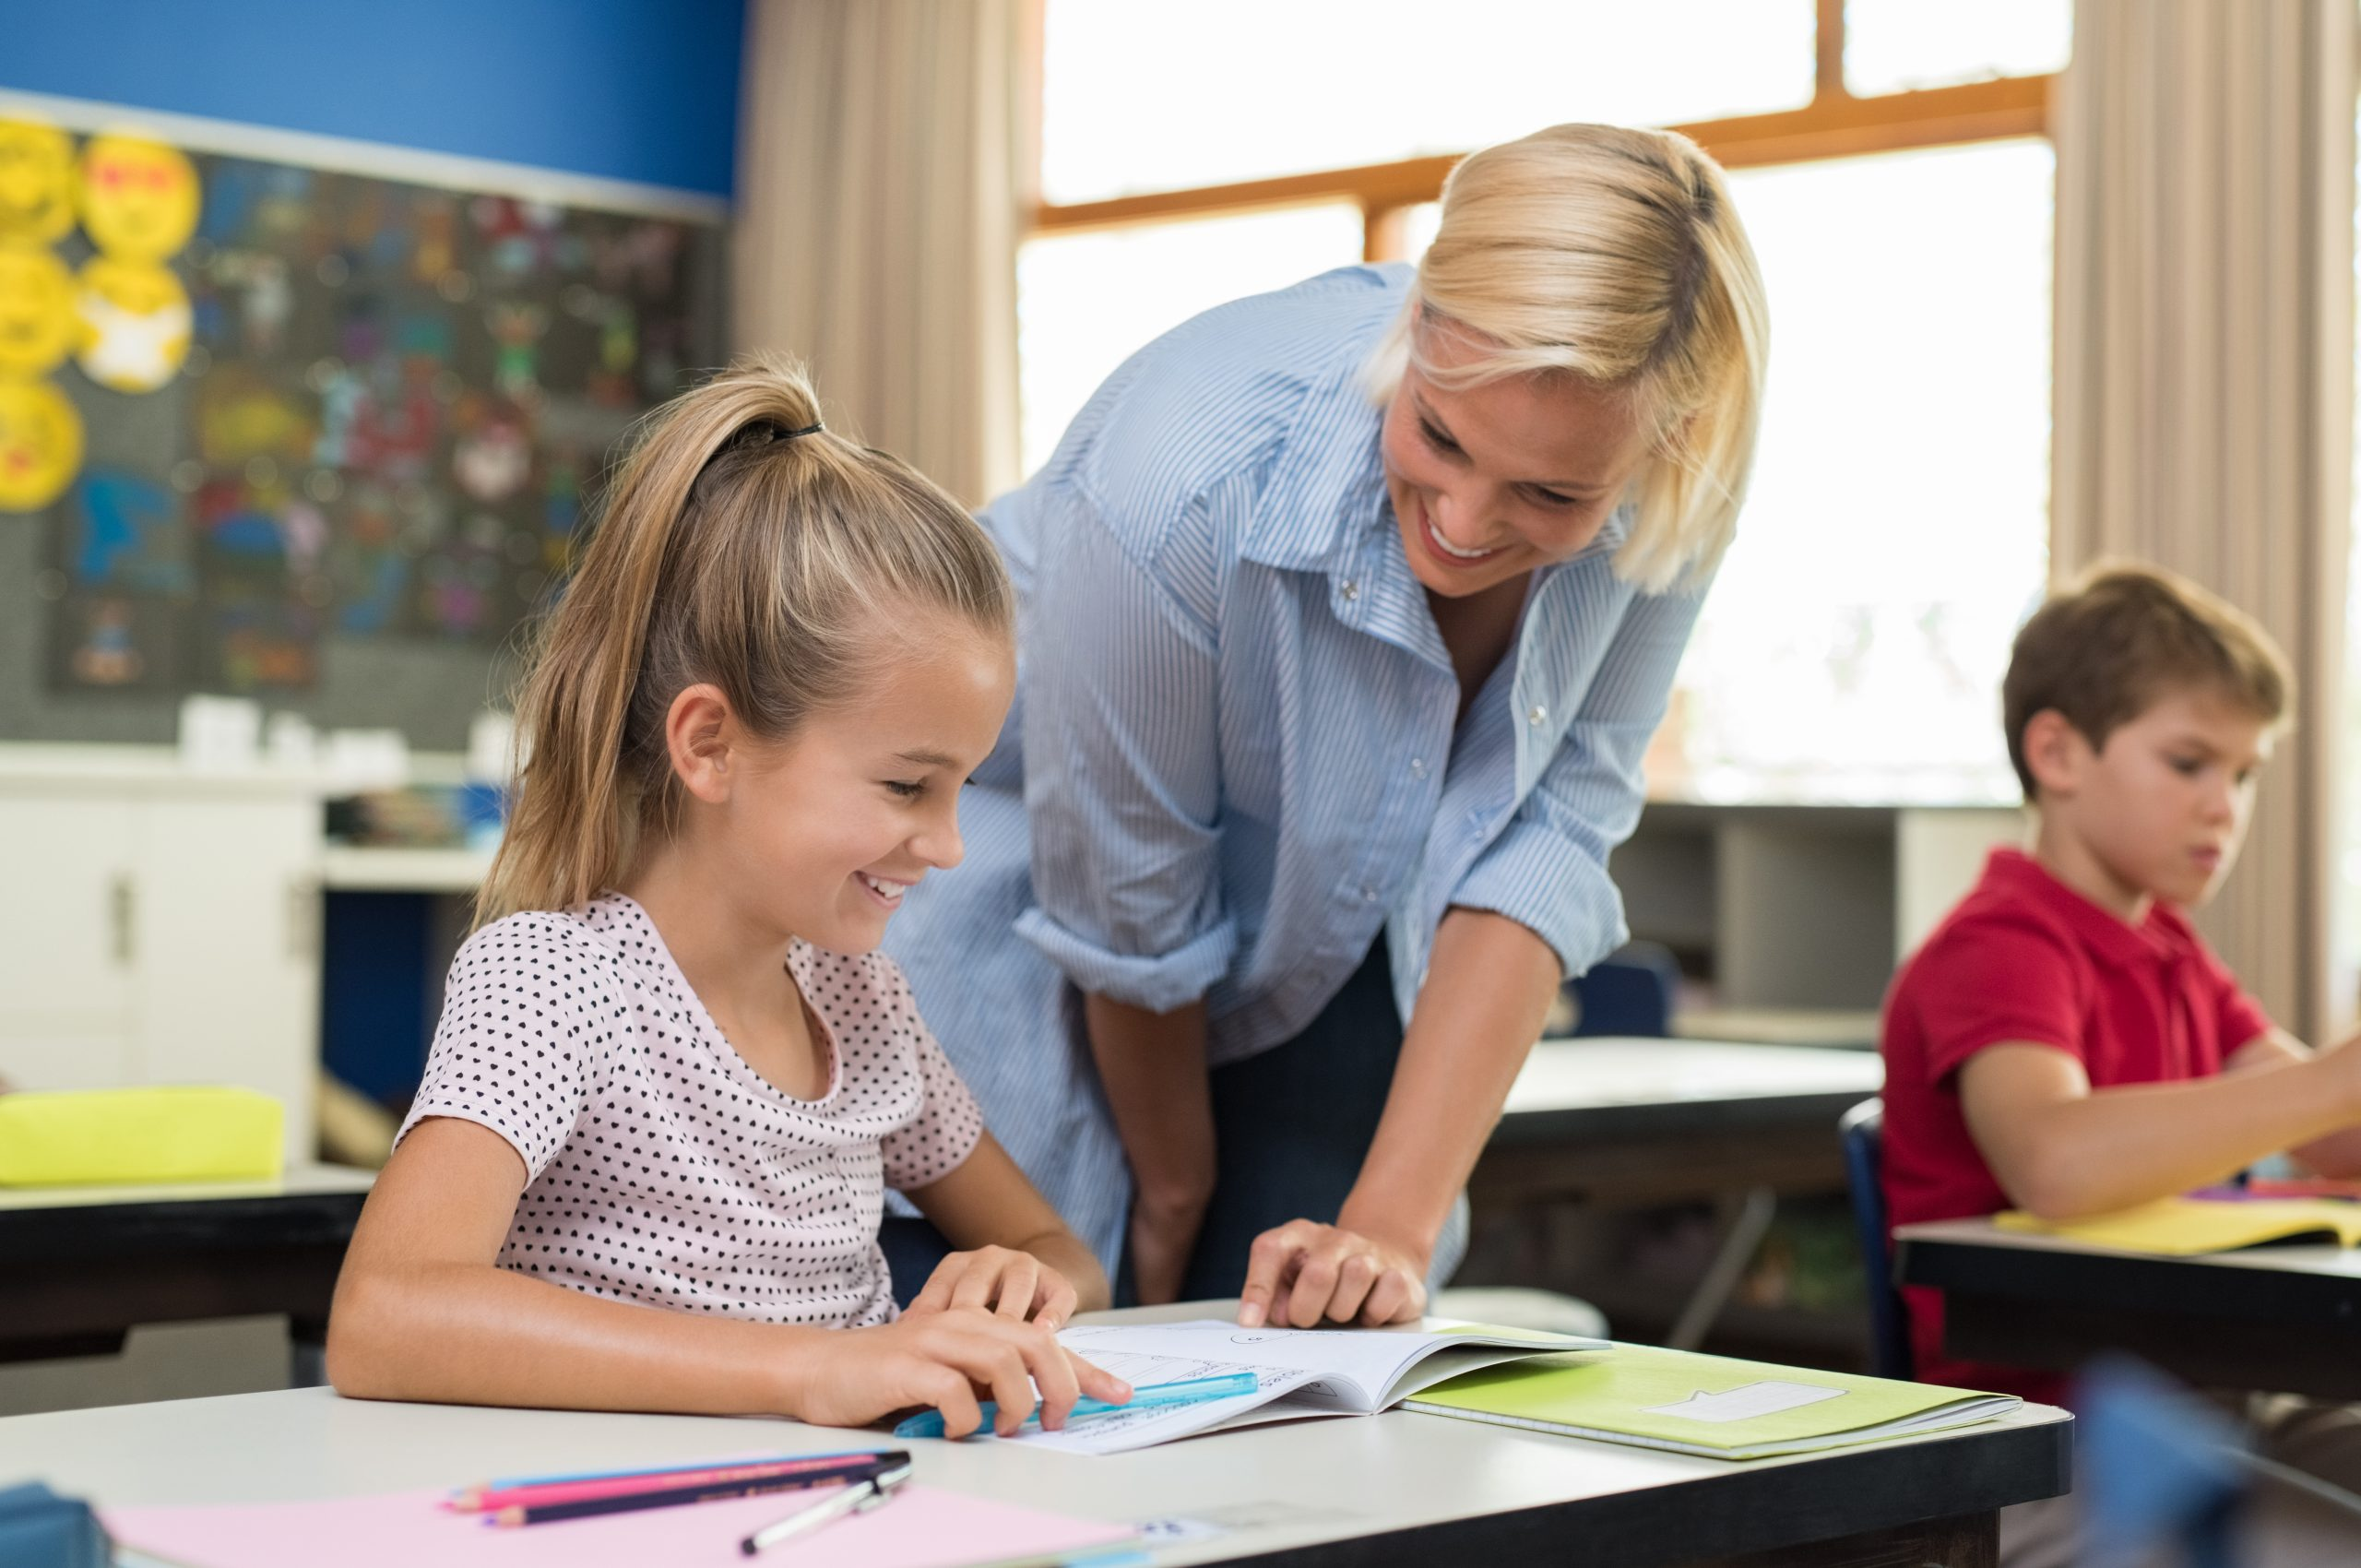 Happy teacher helping young girl with study in classroom. Teacher teaching to smiling schoolgirl at elementary school. Diligent child sitting at school desk with tutor.